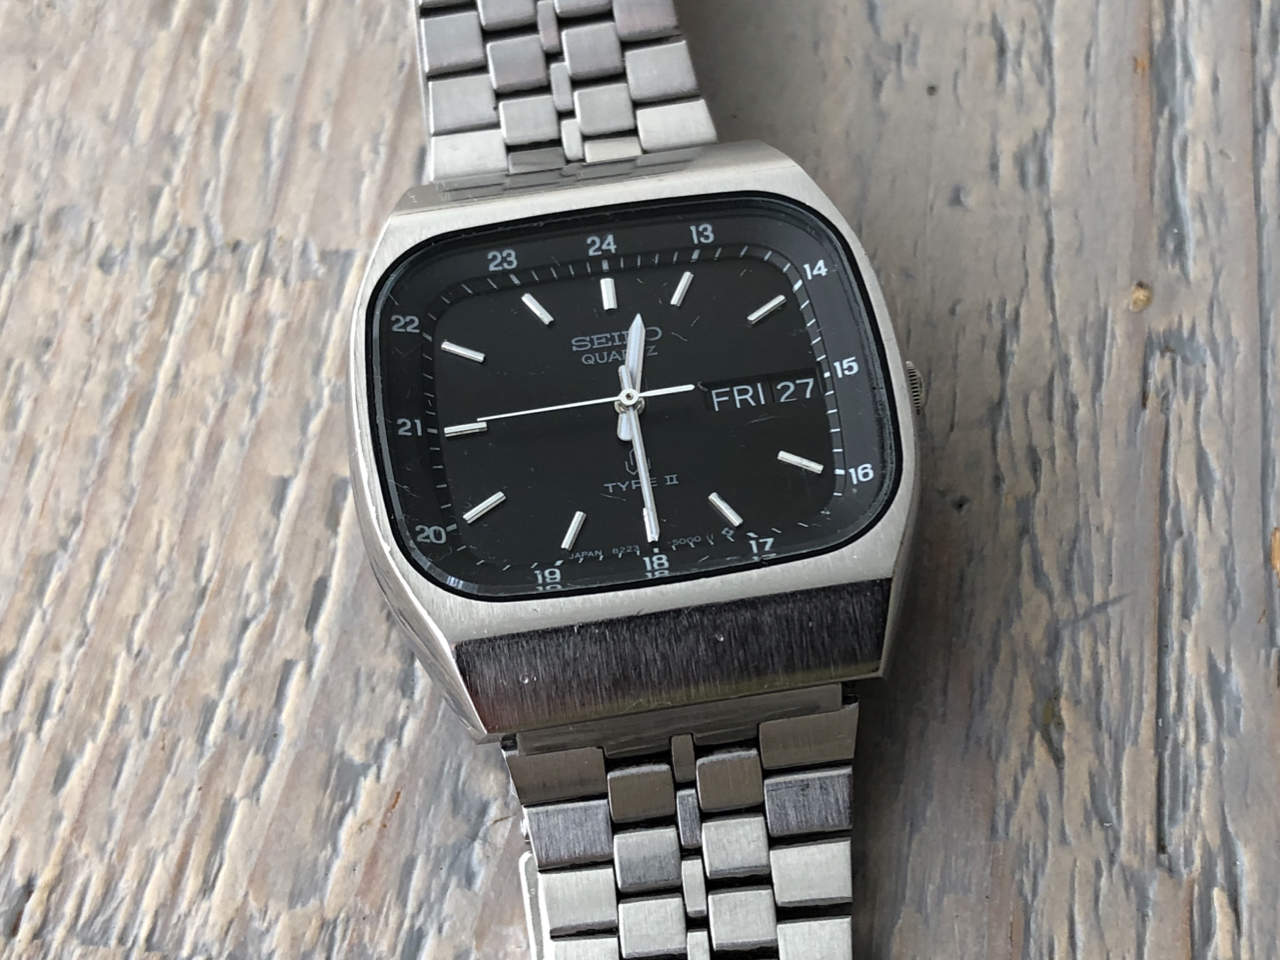 Seiko Quartz Type II 8223-500A (Sold)